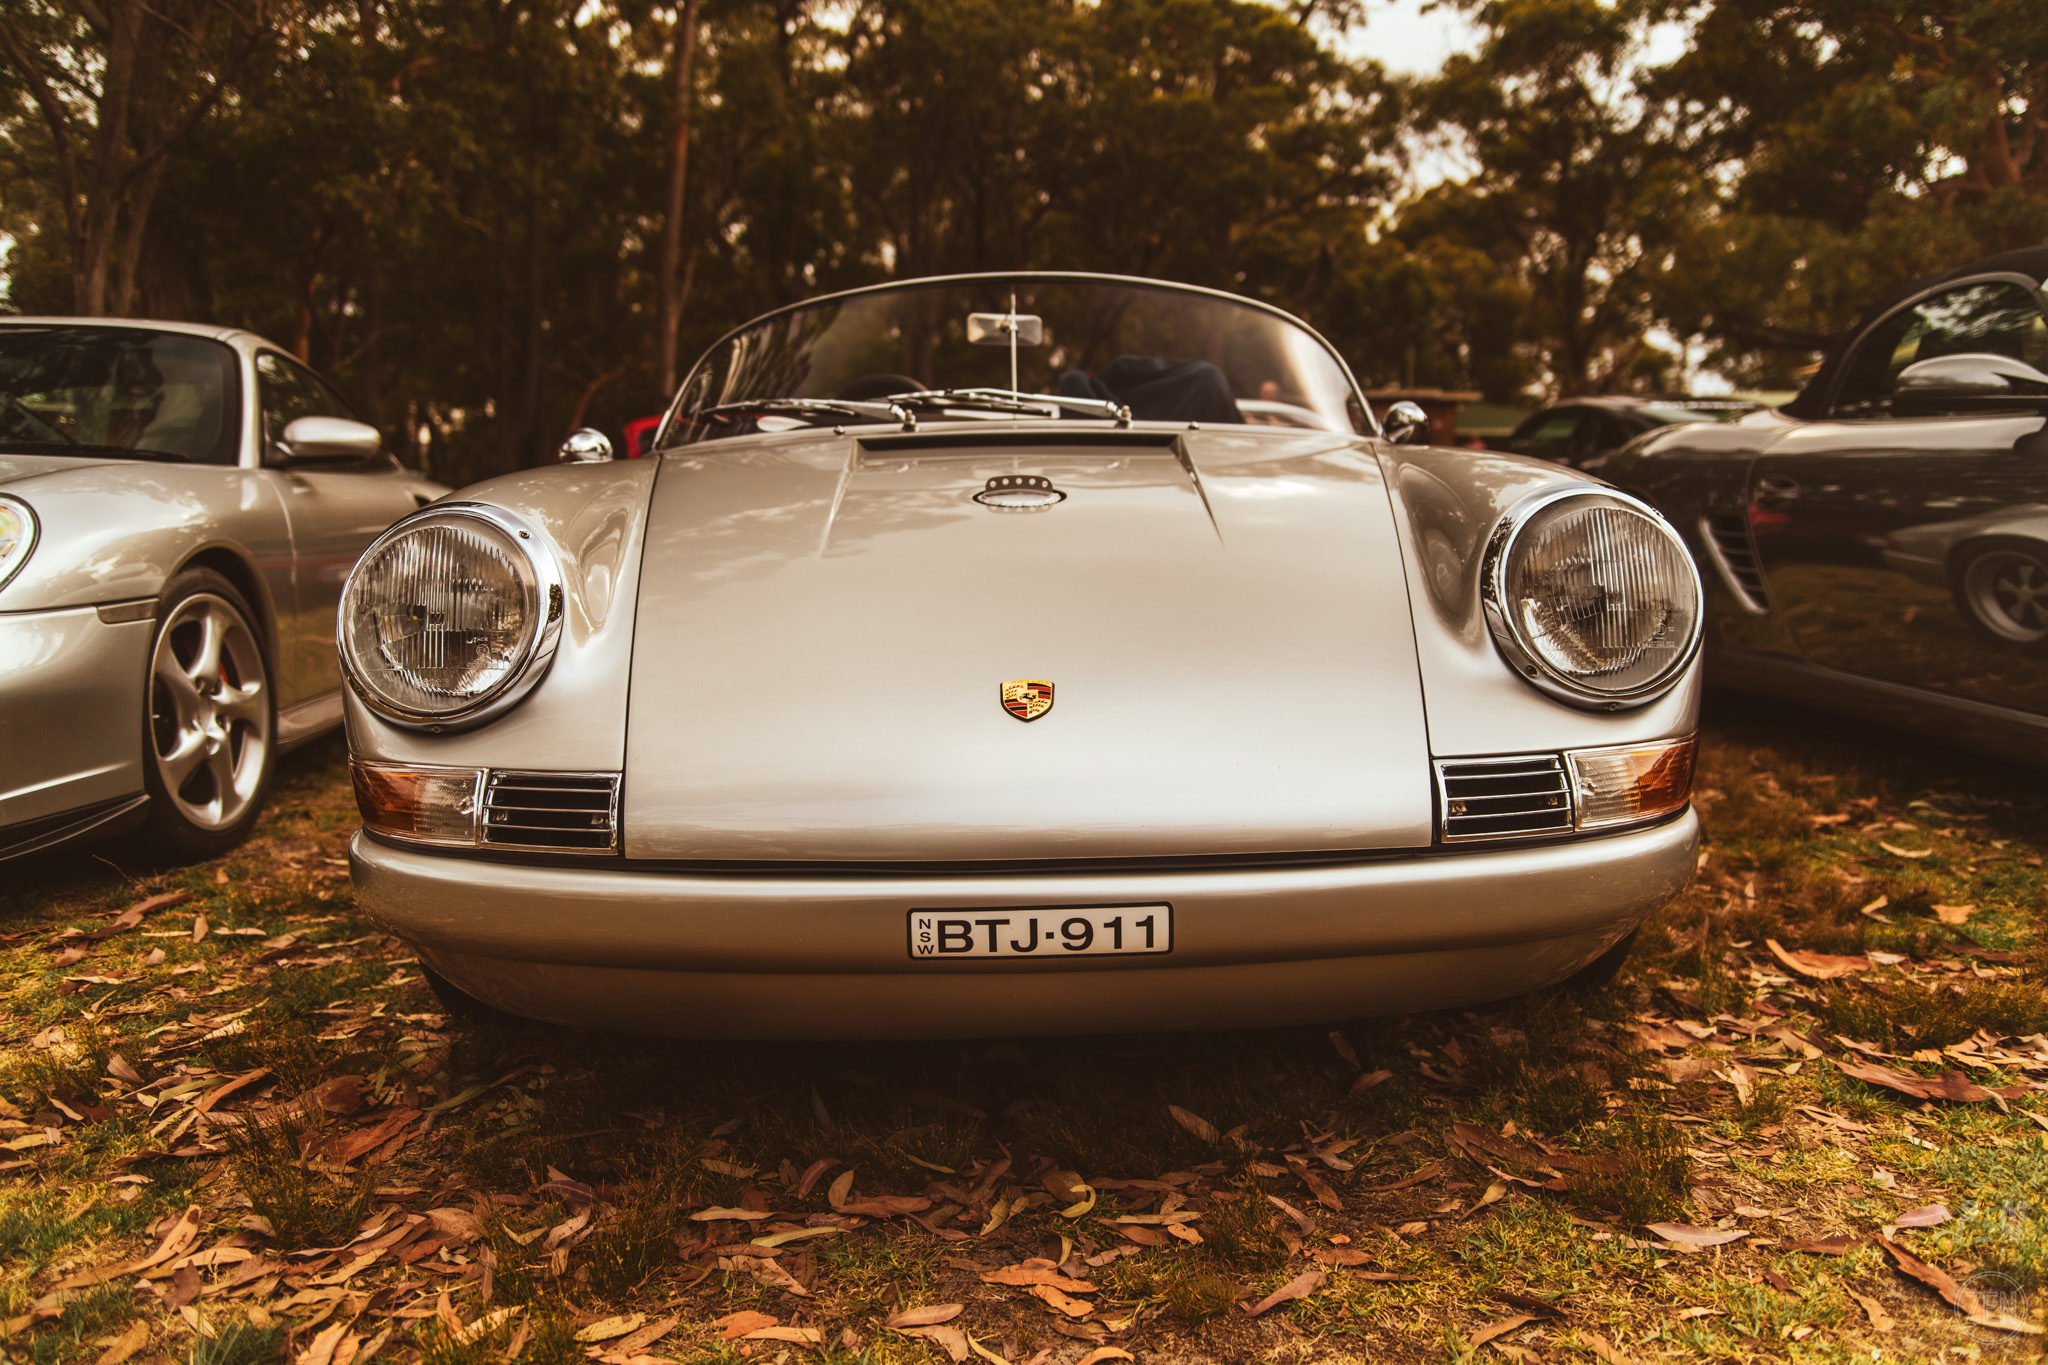 2019-12-08 - Porsches & Coffee 027